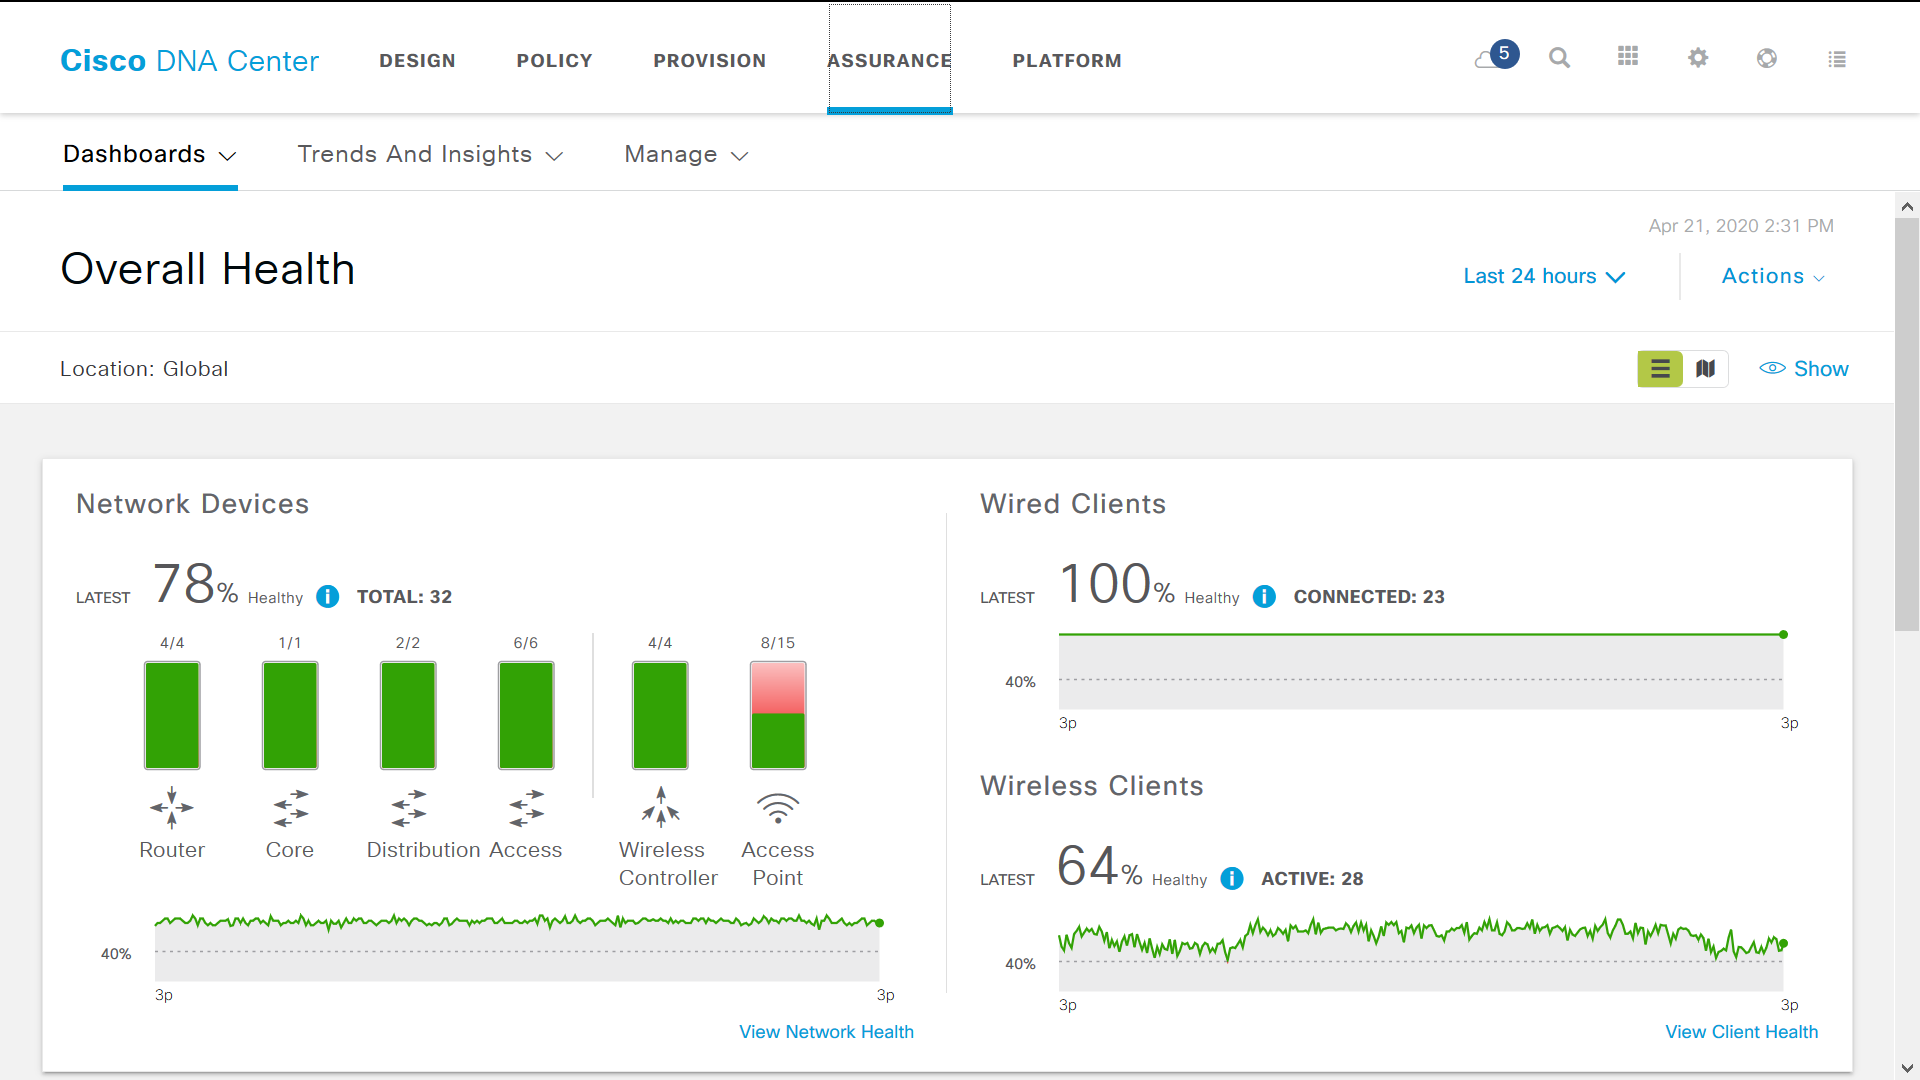 Cisco DNA Center - Overall Network Health dashboard